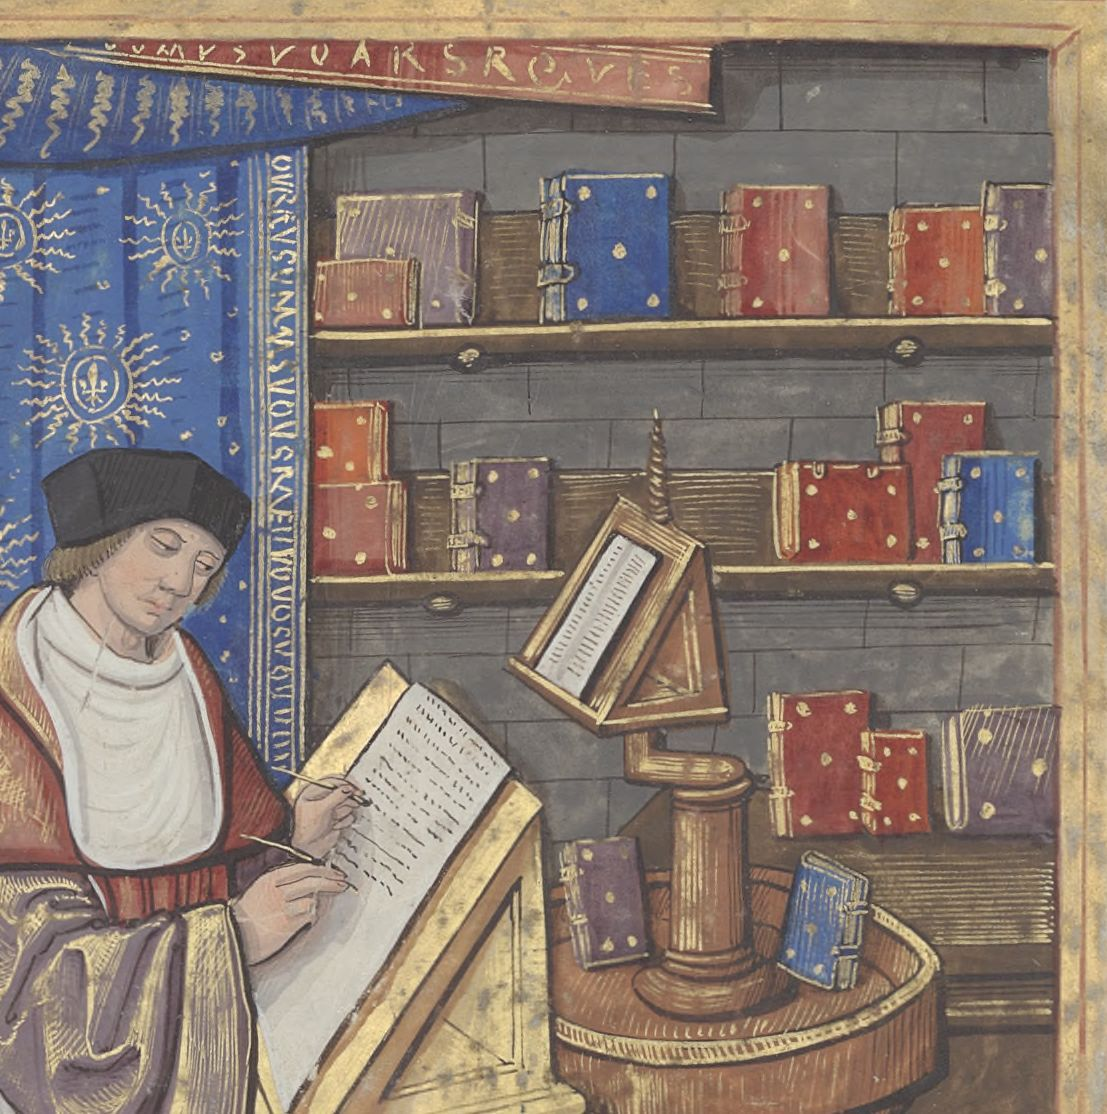 medieval manuscripts scriptorium notes - Buscar con Google